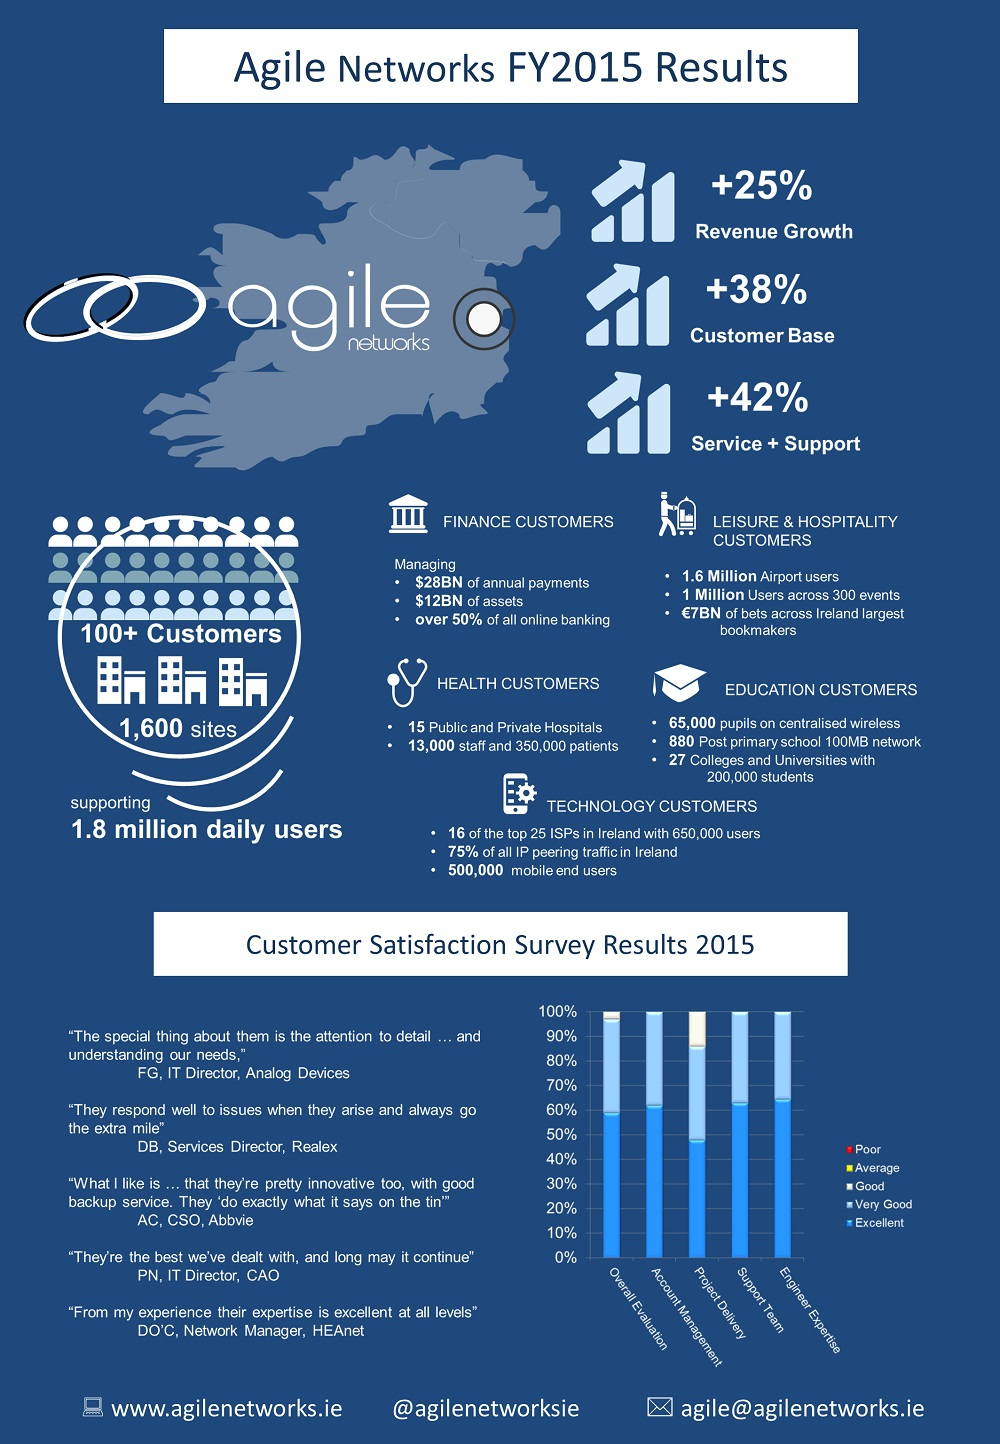 Agile Networks Infographic FY2015